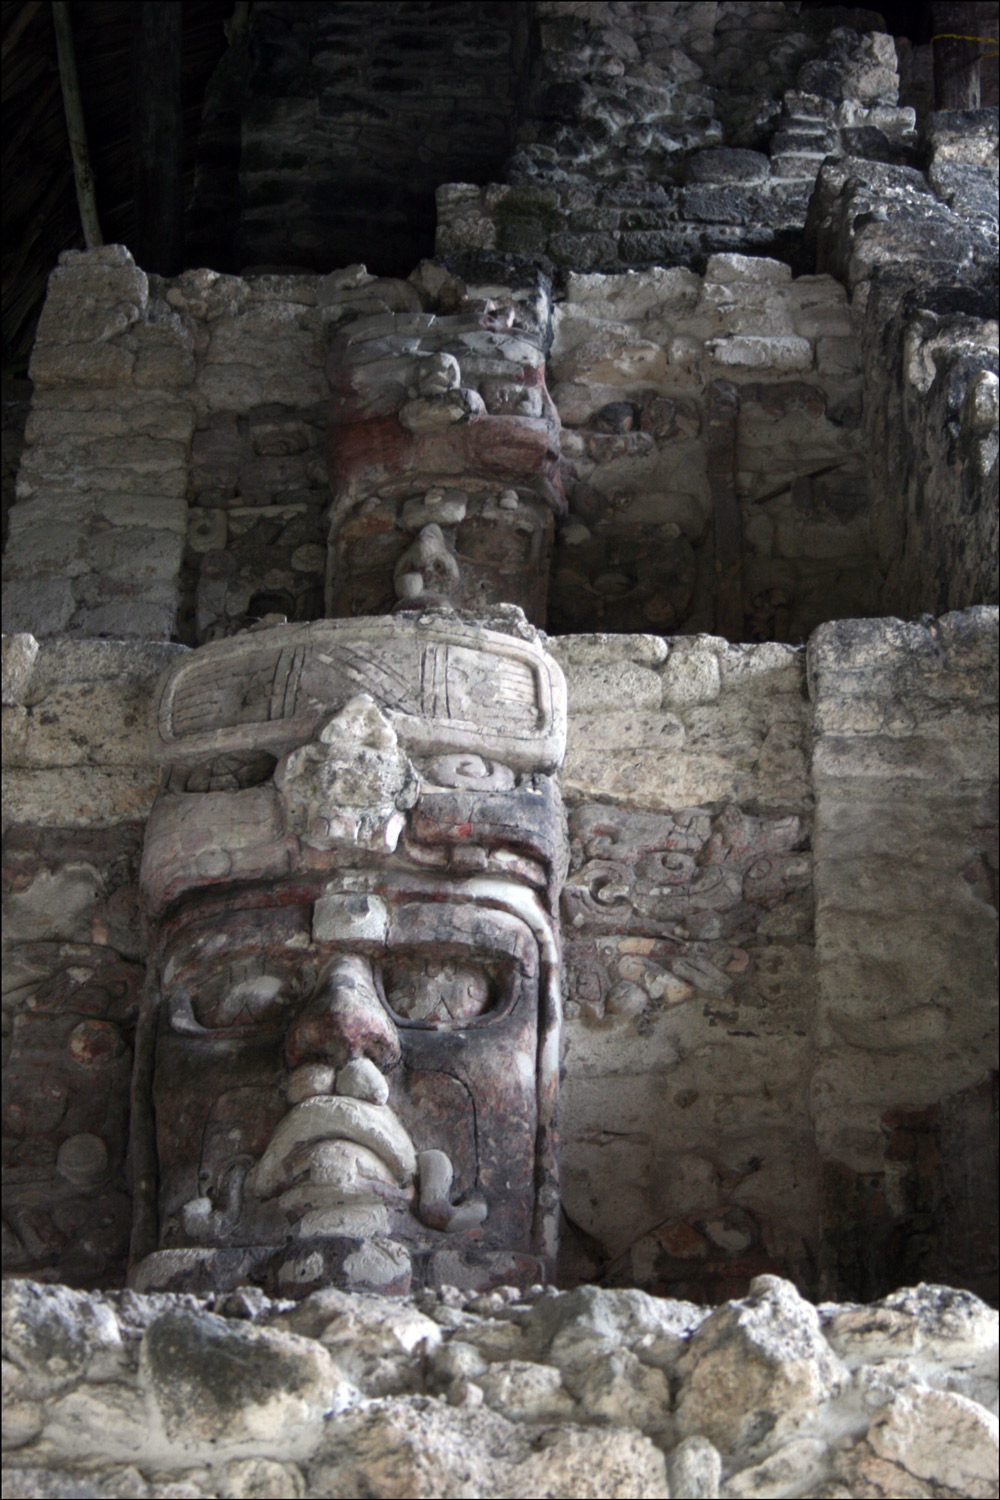 Left Side of the Temple of the Masks in Kohunlich